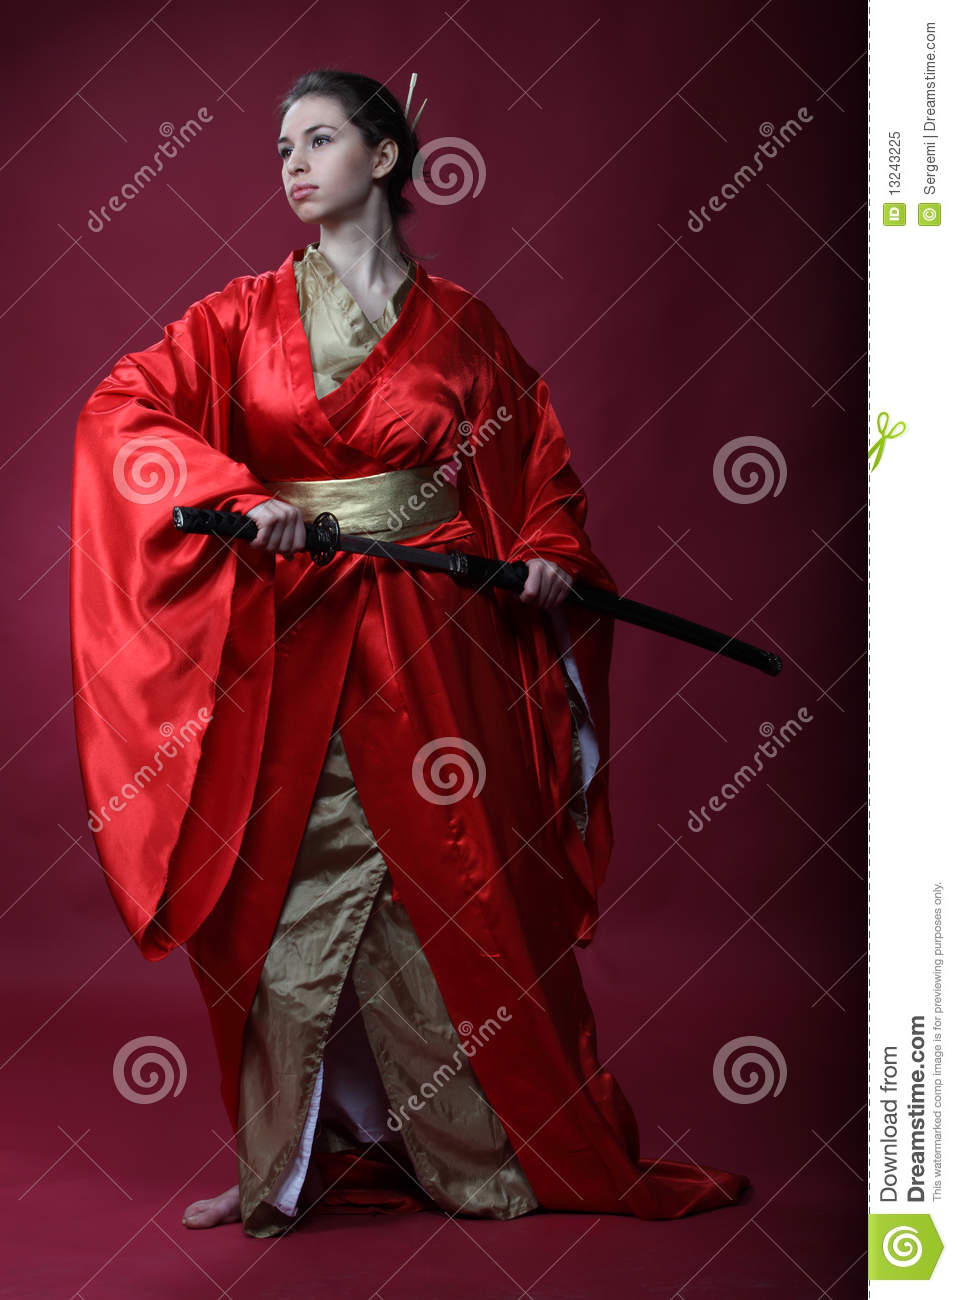 Japanese Samurai Girl Wallpaper Girl In A Kimono With A Katana Stock Image Image Of